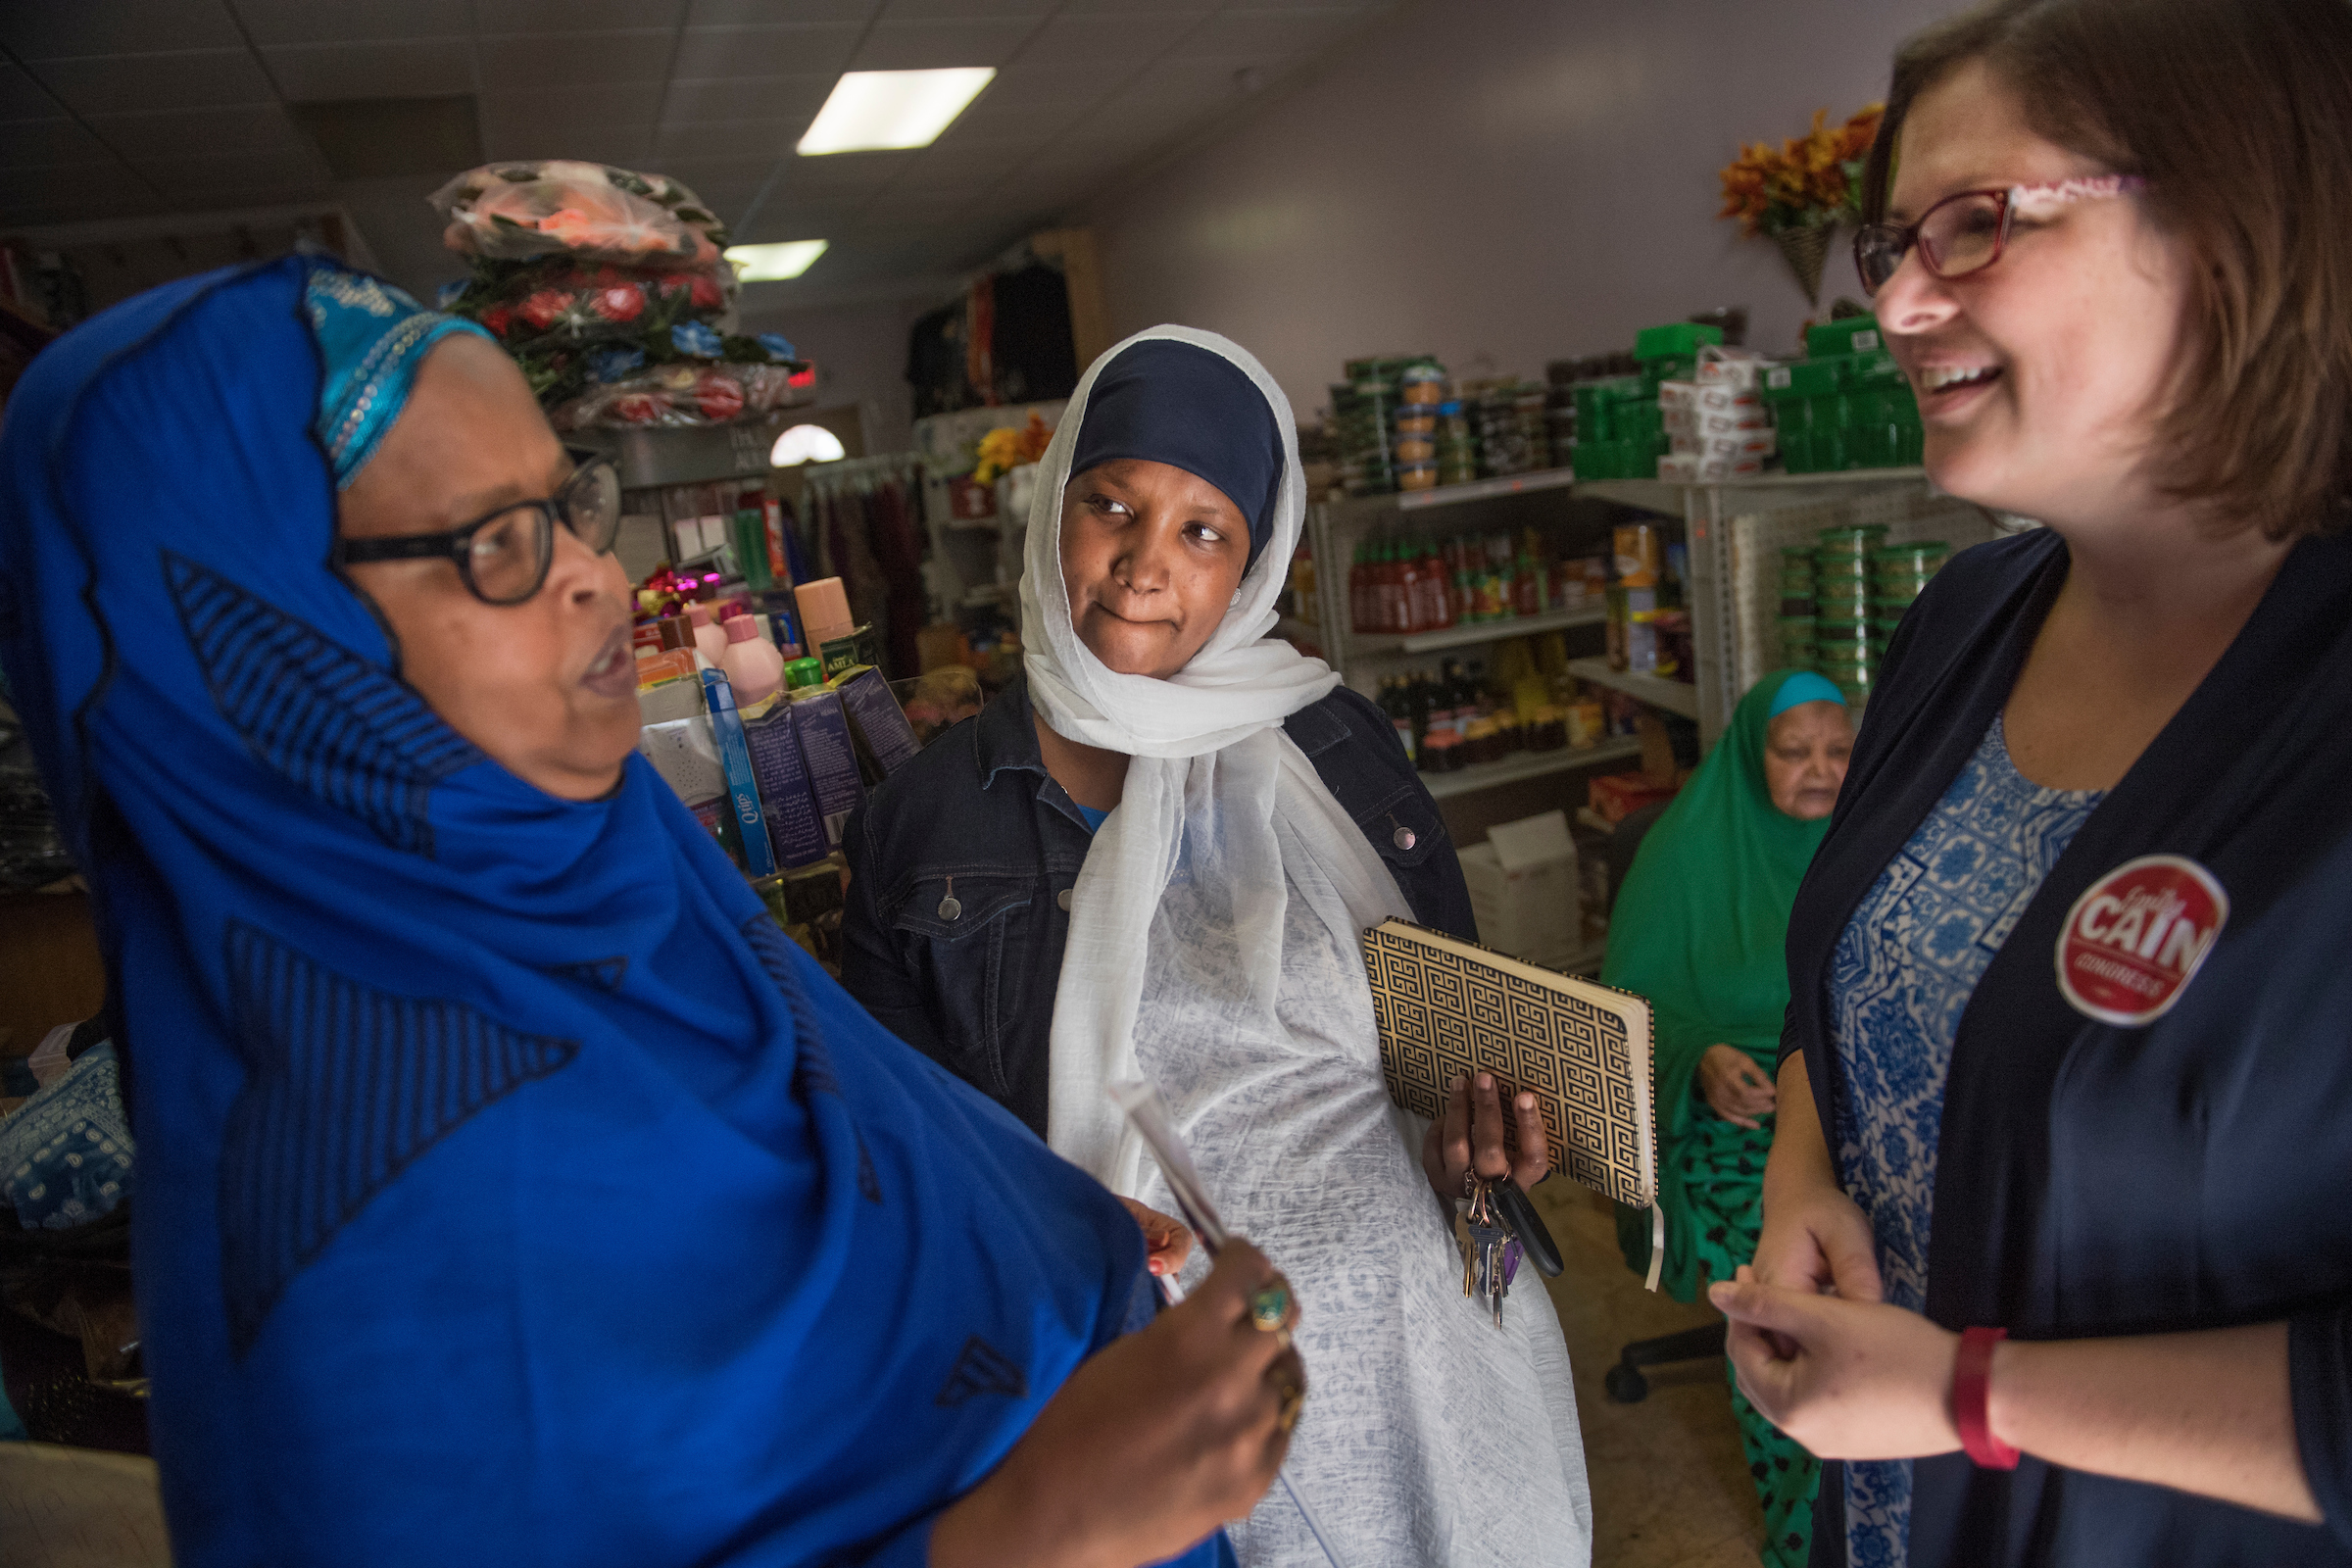 Cain talks with Ansia Dol, right, and Fatuma Hussein, center, both from Somali, at the Al Madina Variety & Halal Store in Lewiston, Maine, last week. (Tom Williams/CQ Roll Call)